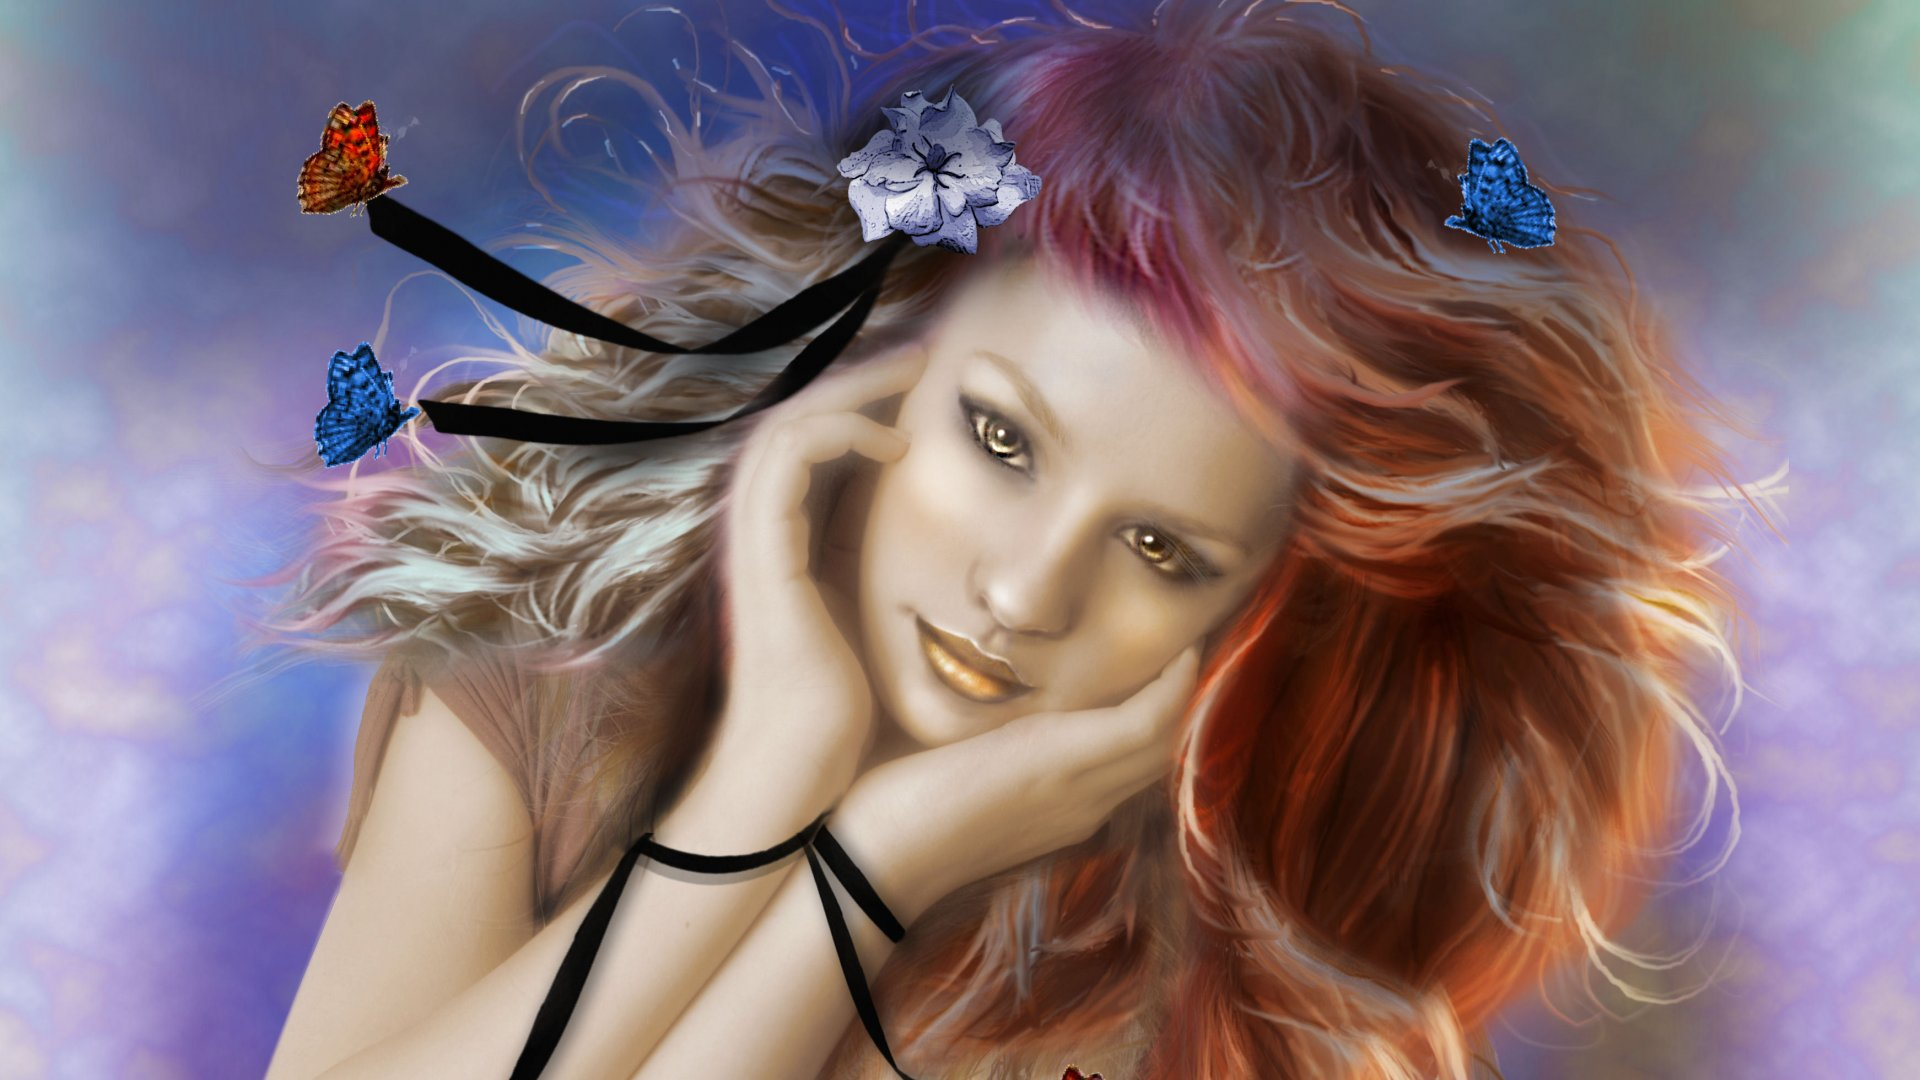 fantasy-girl-butterflies-brown-eyes-yellow-lips-long-hair-1920x1080